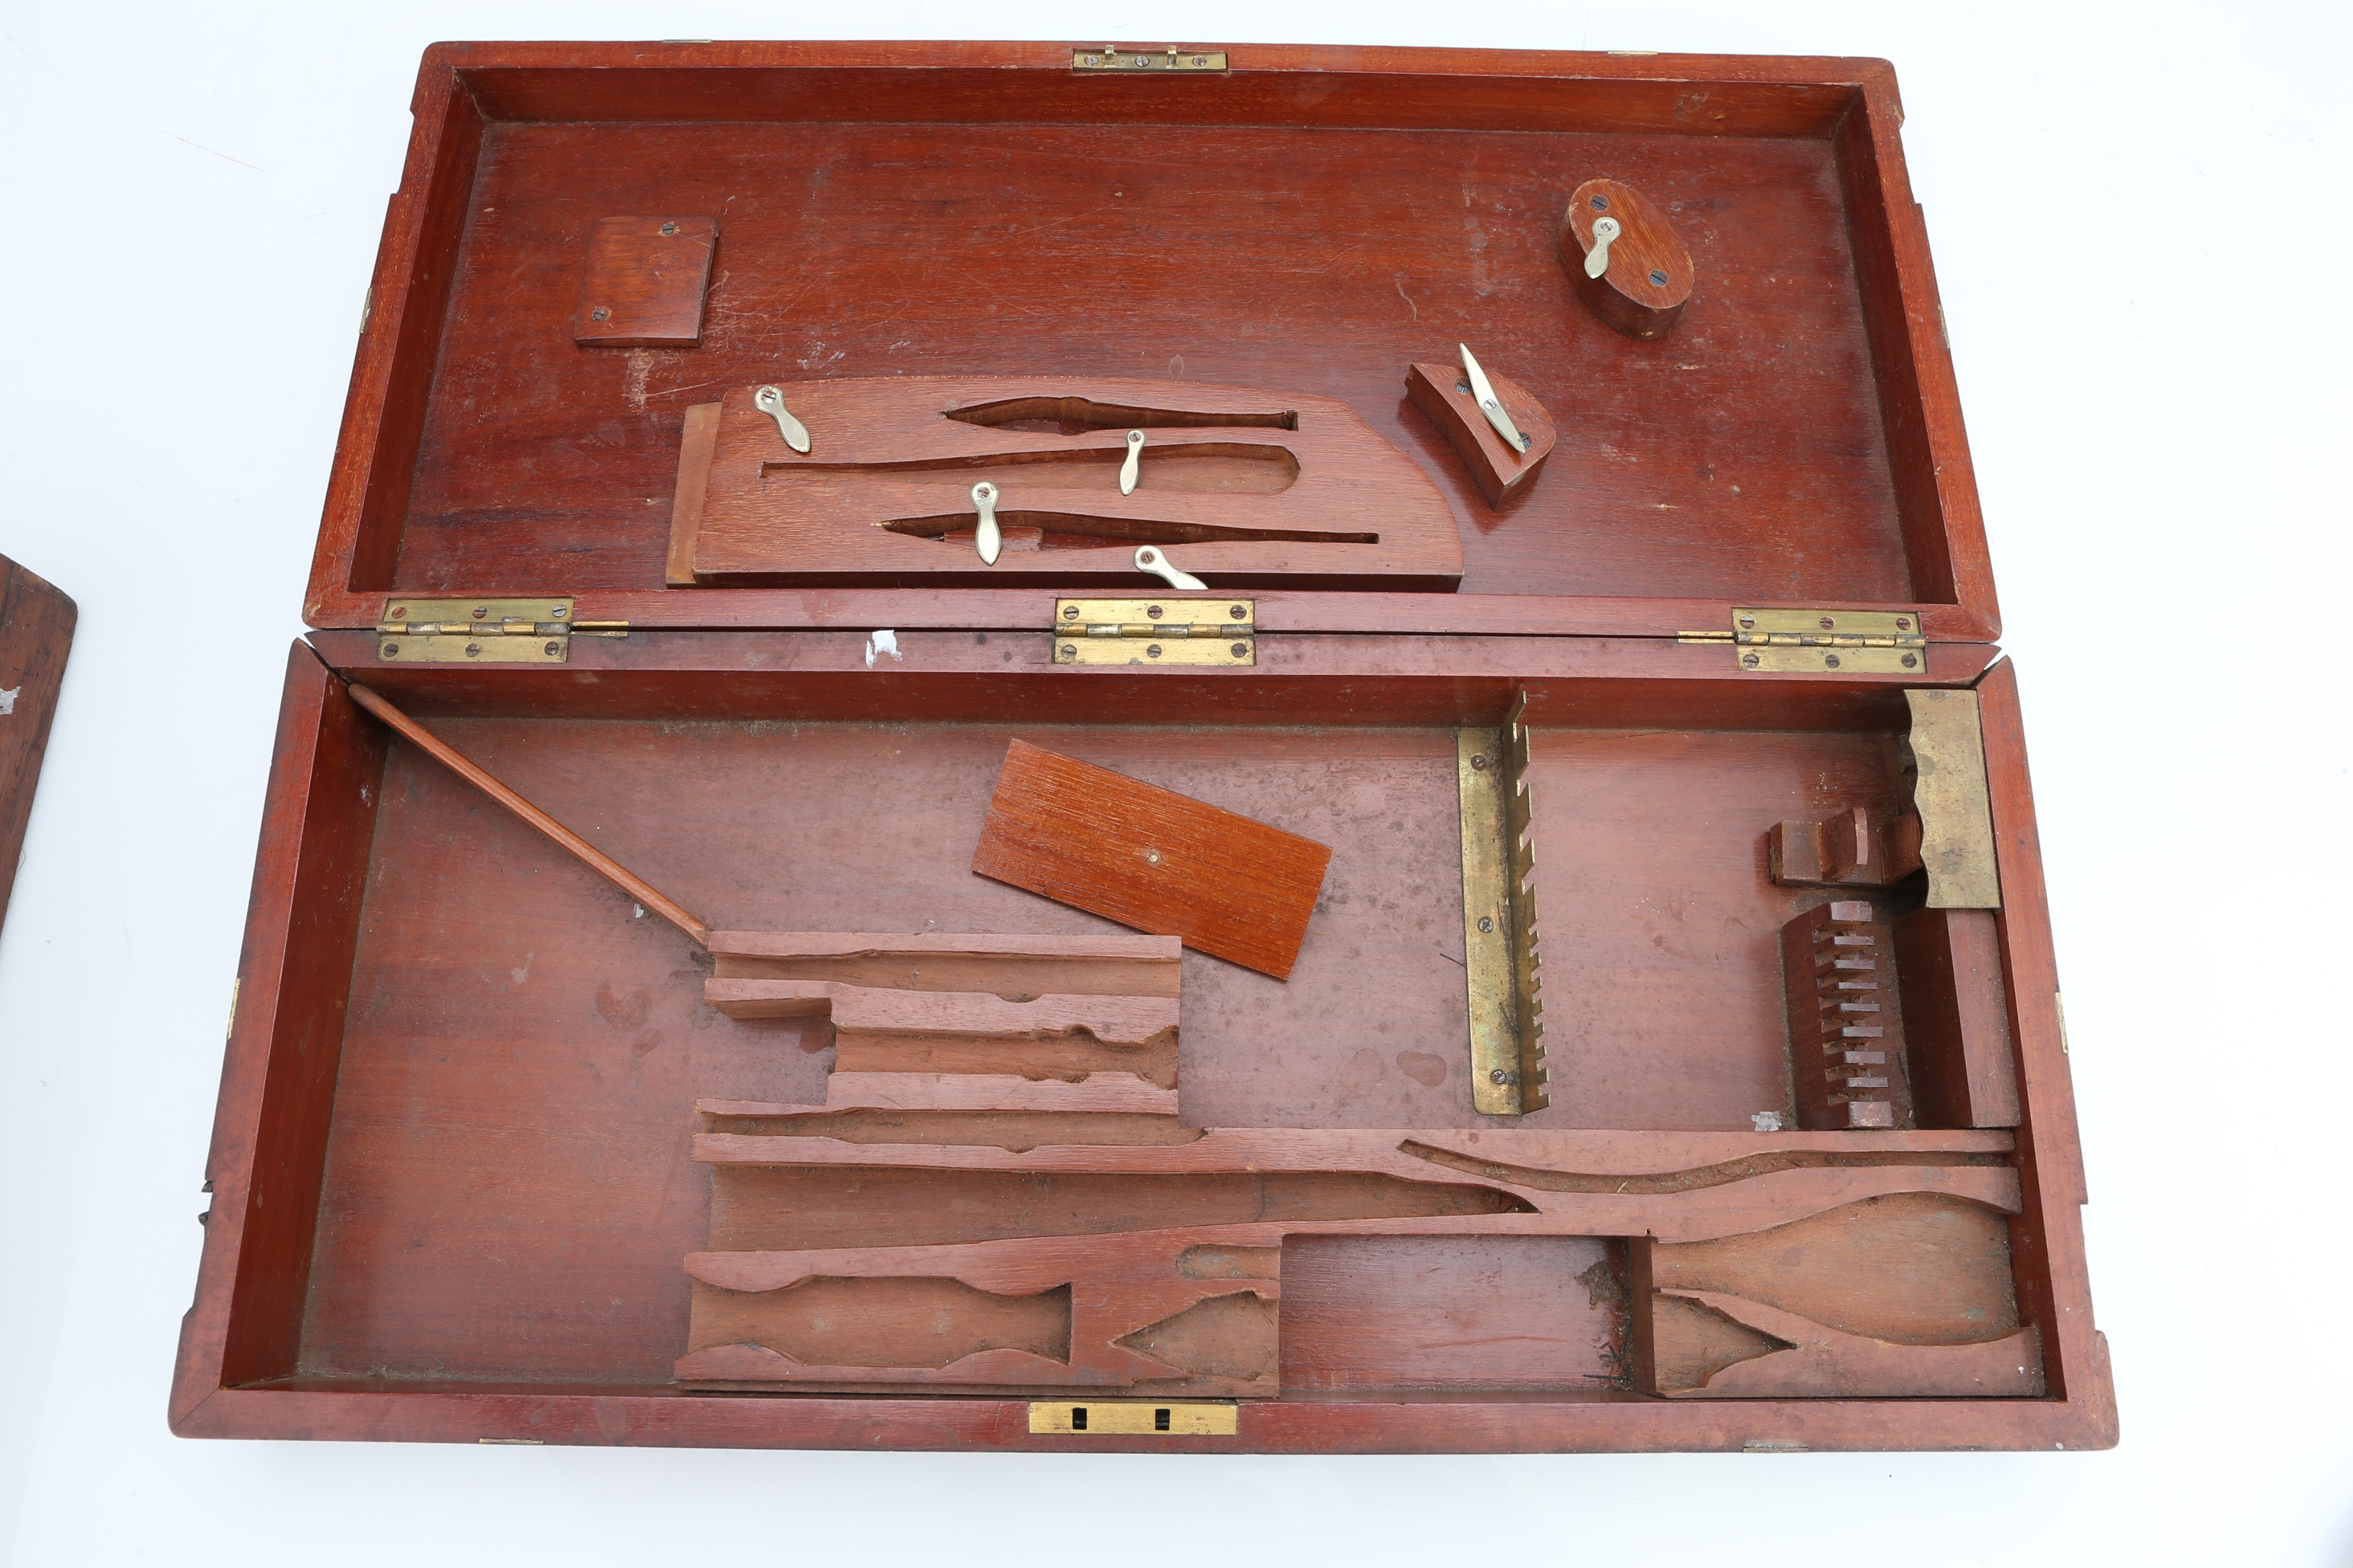 Antique Surgical Instrument Cases, - Image 2 of 5